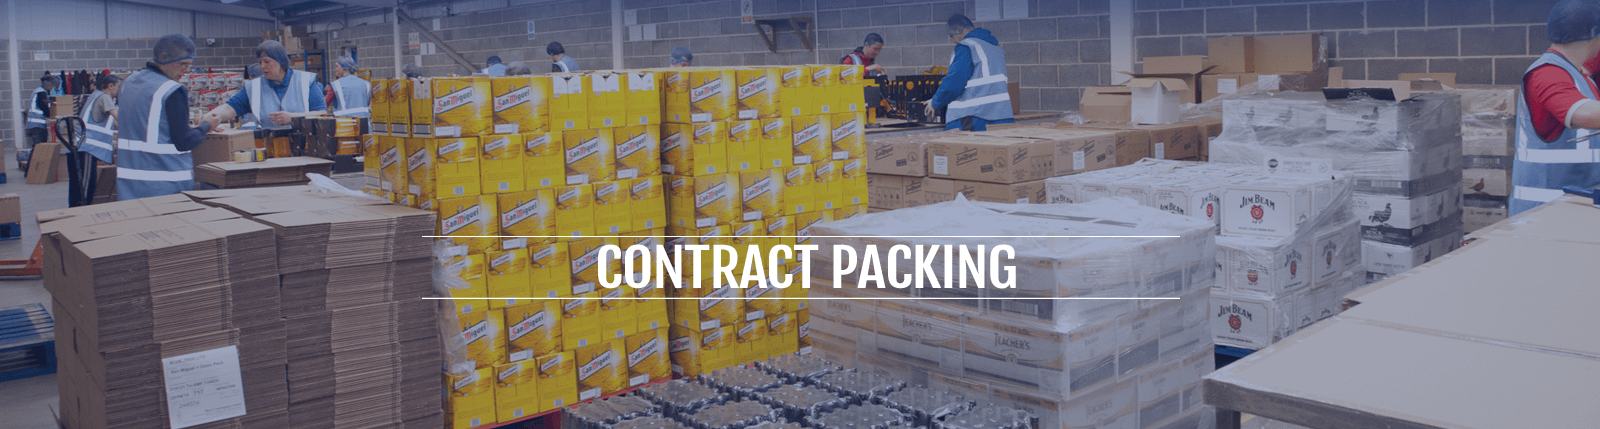 contract packing banner